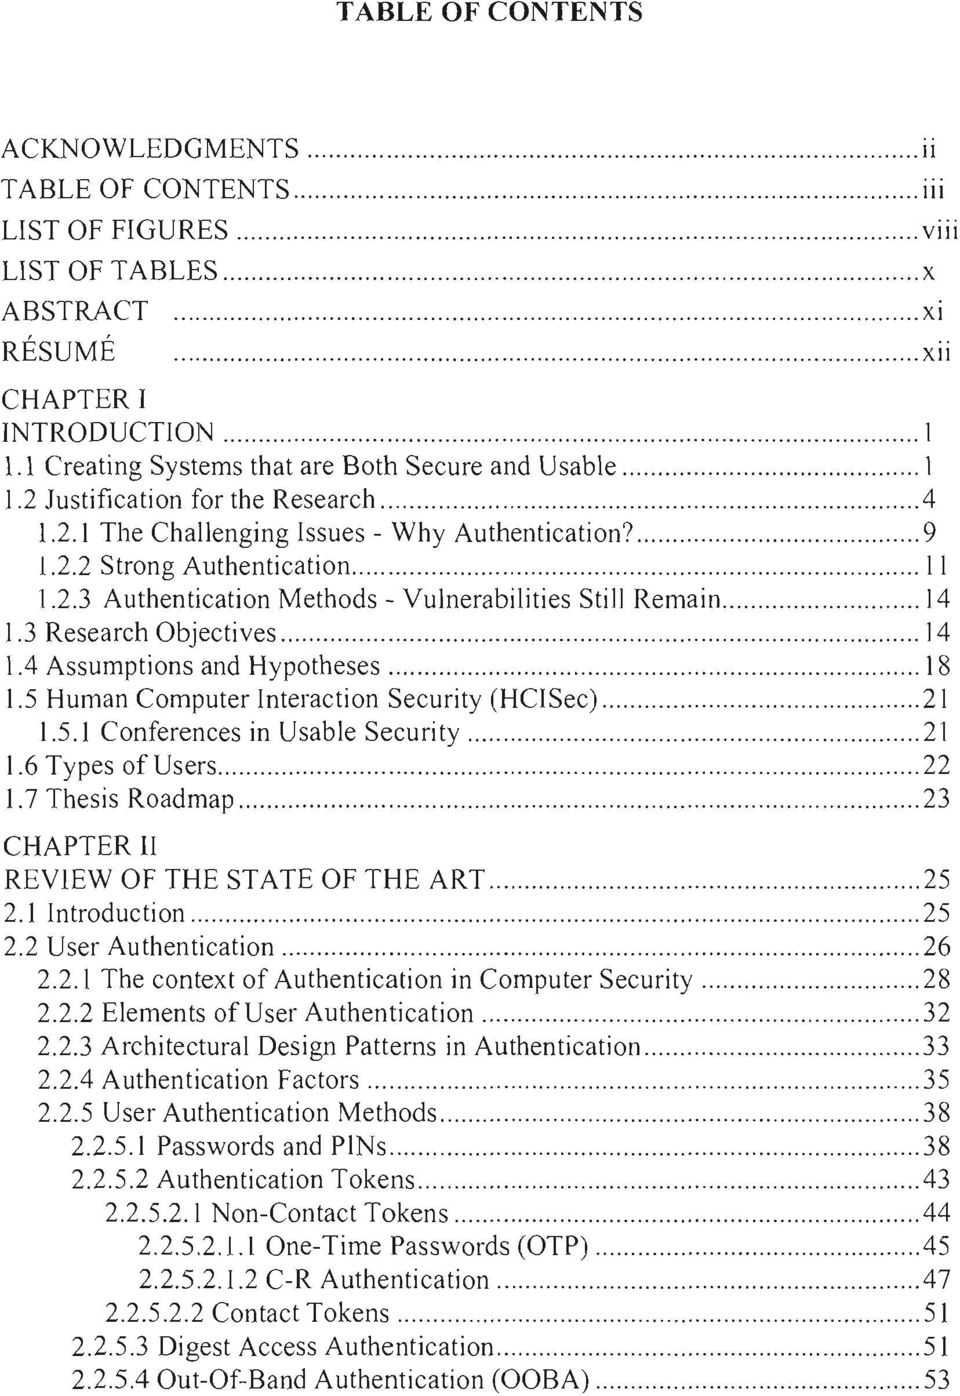 3 Research Objectives 14 1.4 Assumptions and Hypotheses 18 1.5 Human Computer Interaction Security (HCISec) 21 1.5.1 Conferences in Usable Security 21 1.6 Types ofusers 22 1.